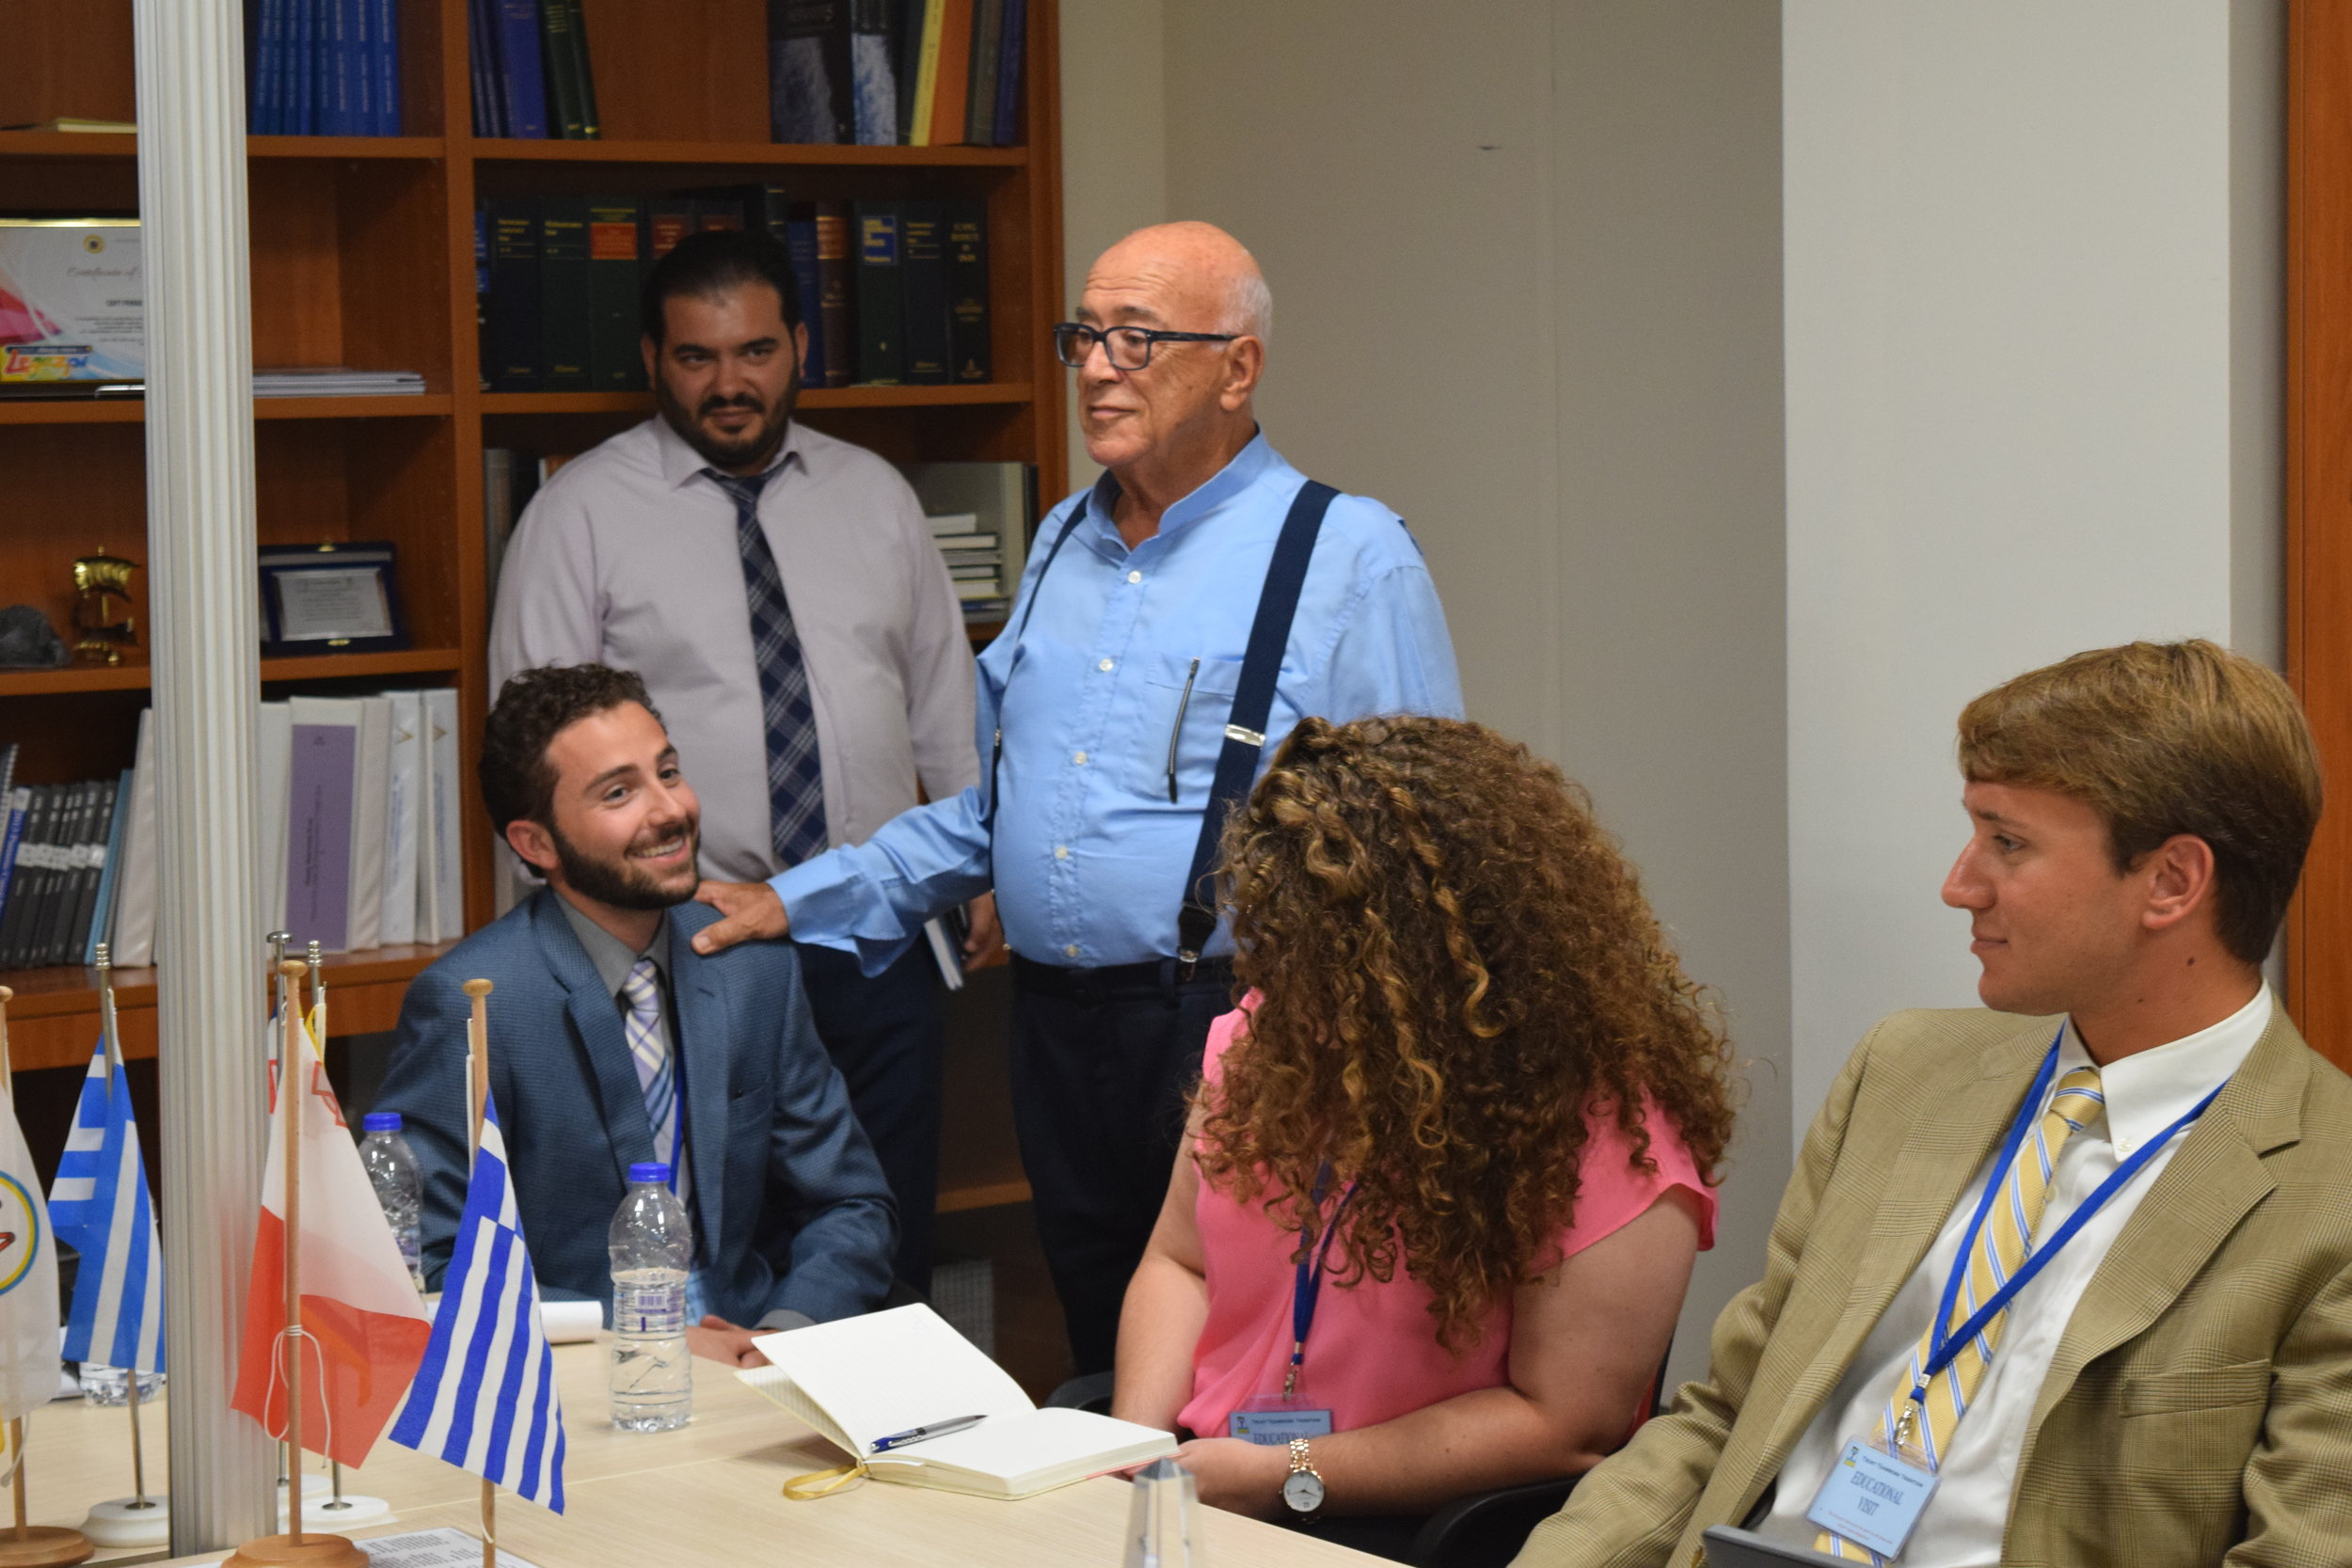 Captain Pangiotis Tsakos, founder of Tsakos Shipping & Trading S.A. talks about the strength of Greek shipping and provides students with successful business advice.